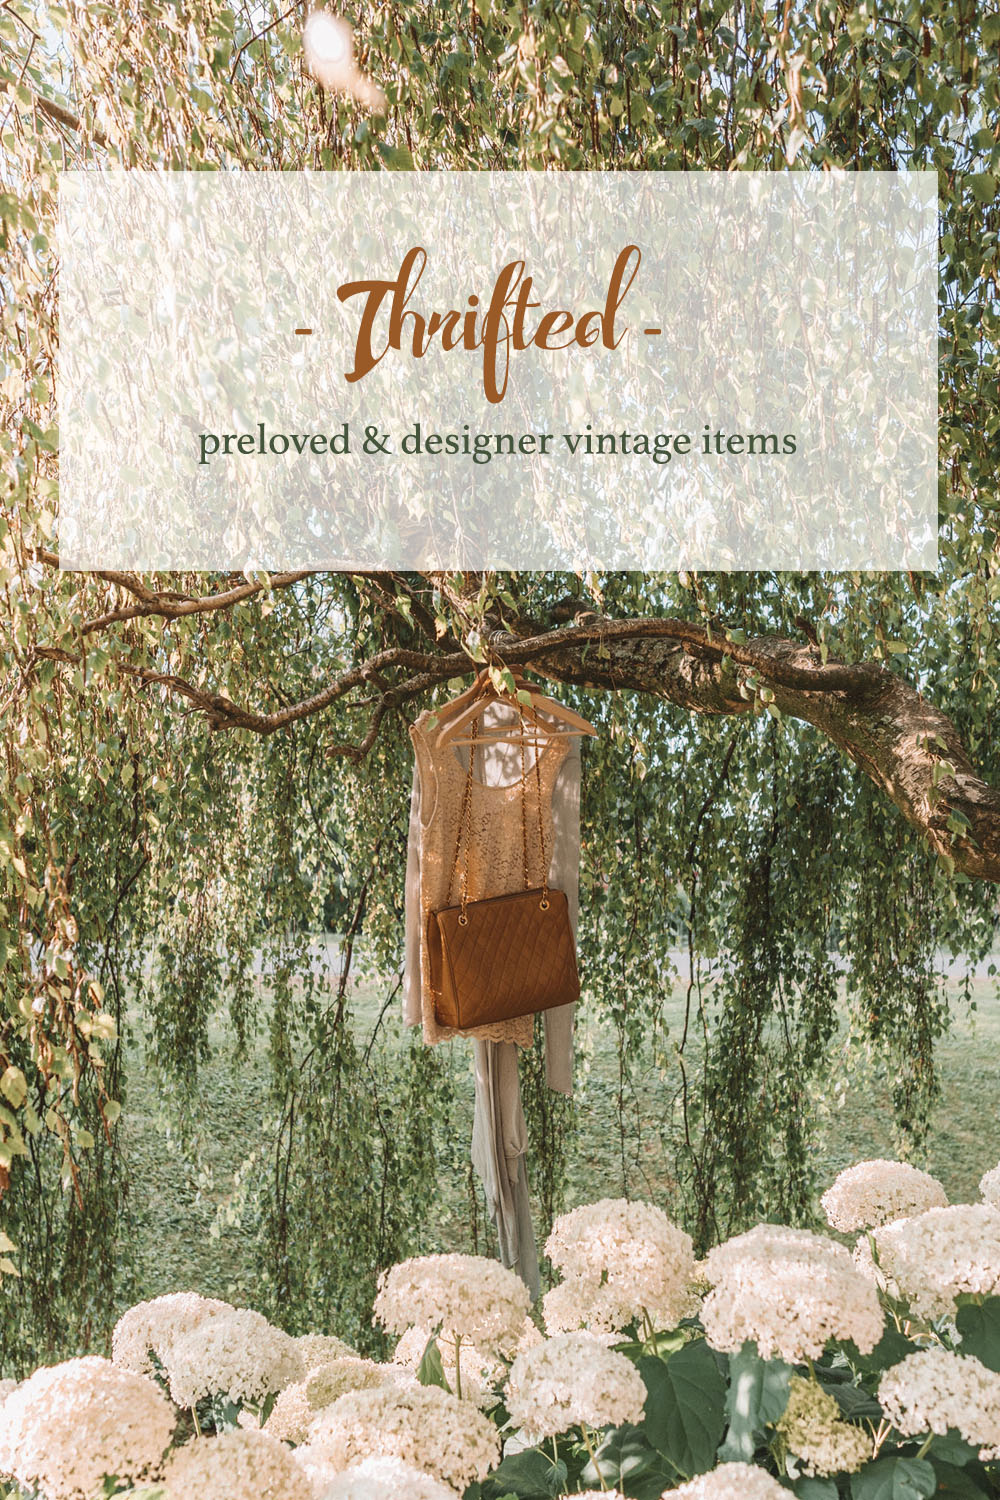 Preloved fashion Linda's Wholesome Life